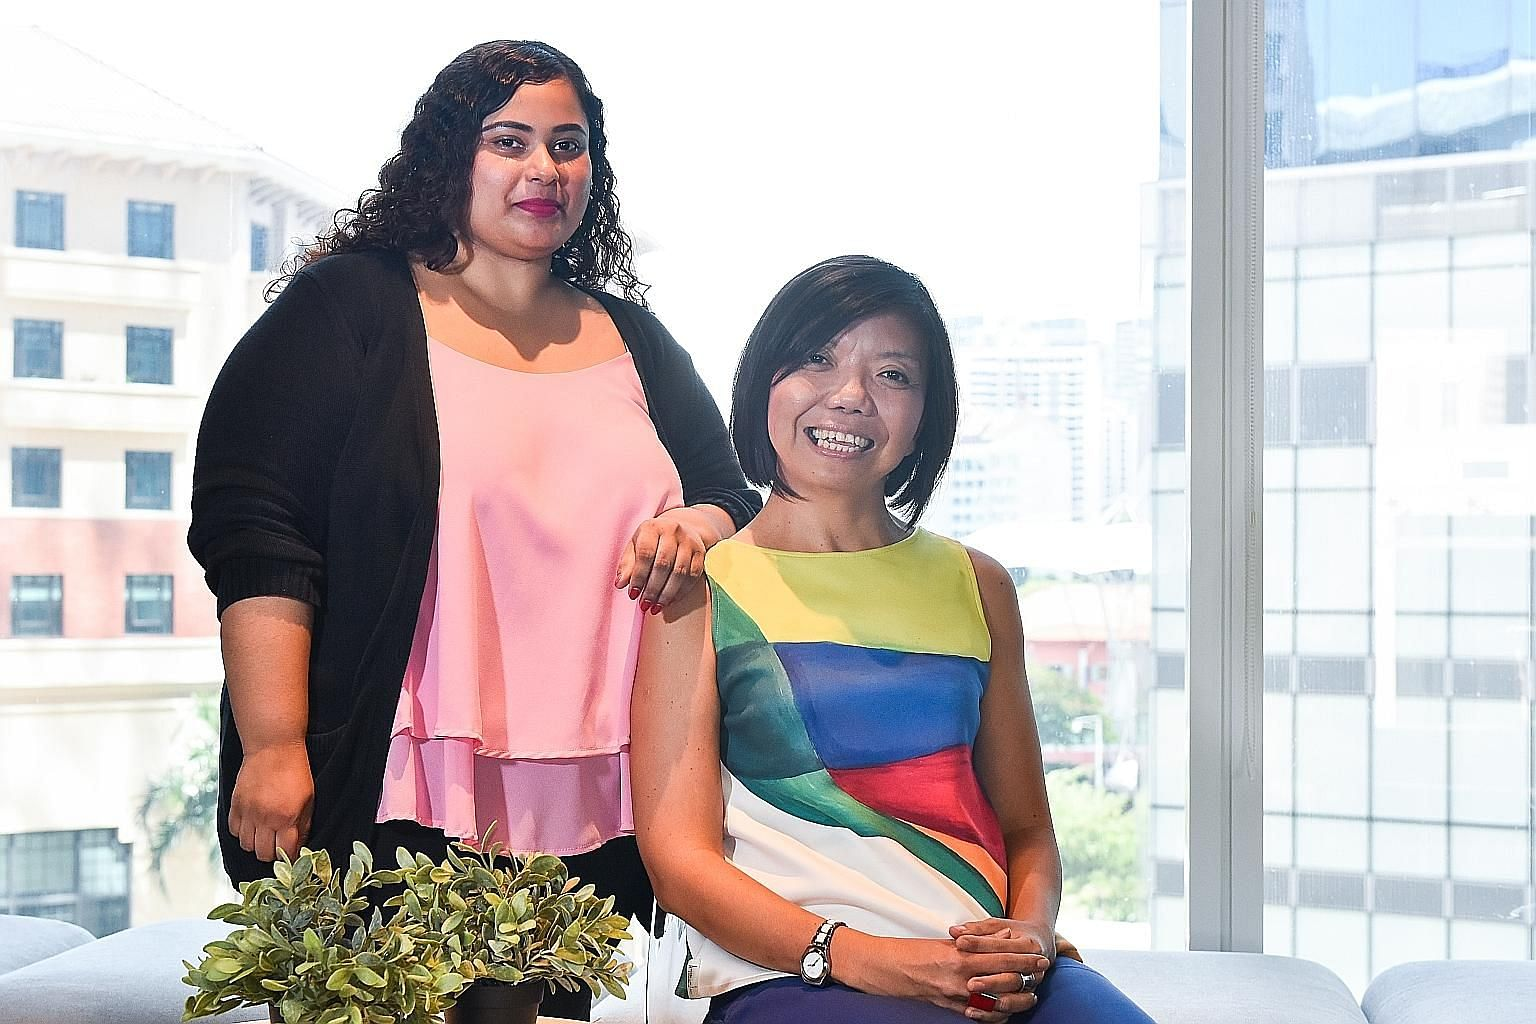 Mental health advocate Nawira Baig, a partner associate at Hush Teabar who has had bipolar disorder since her teens, says she can open up to her boss, Ms Anthea Ong.